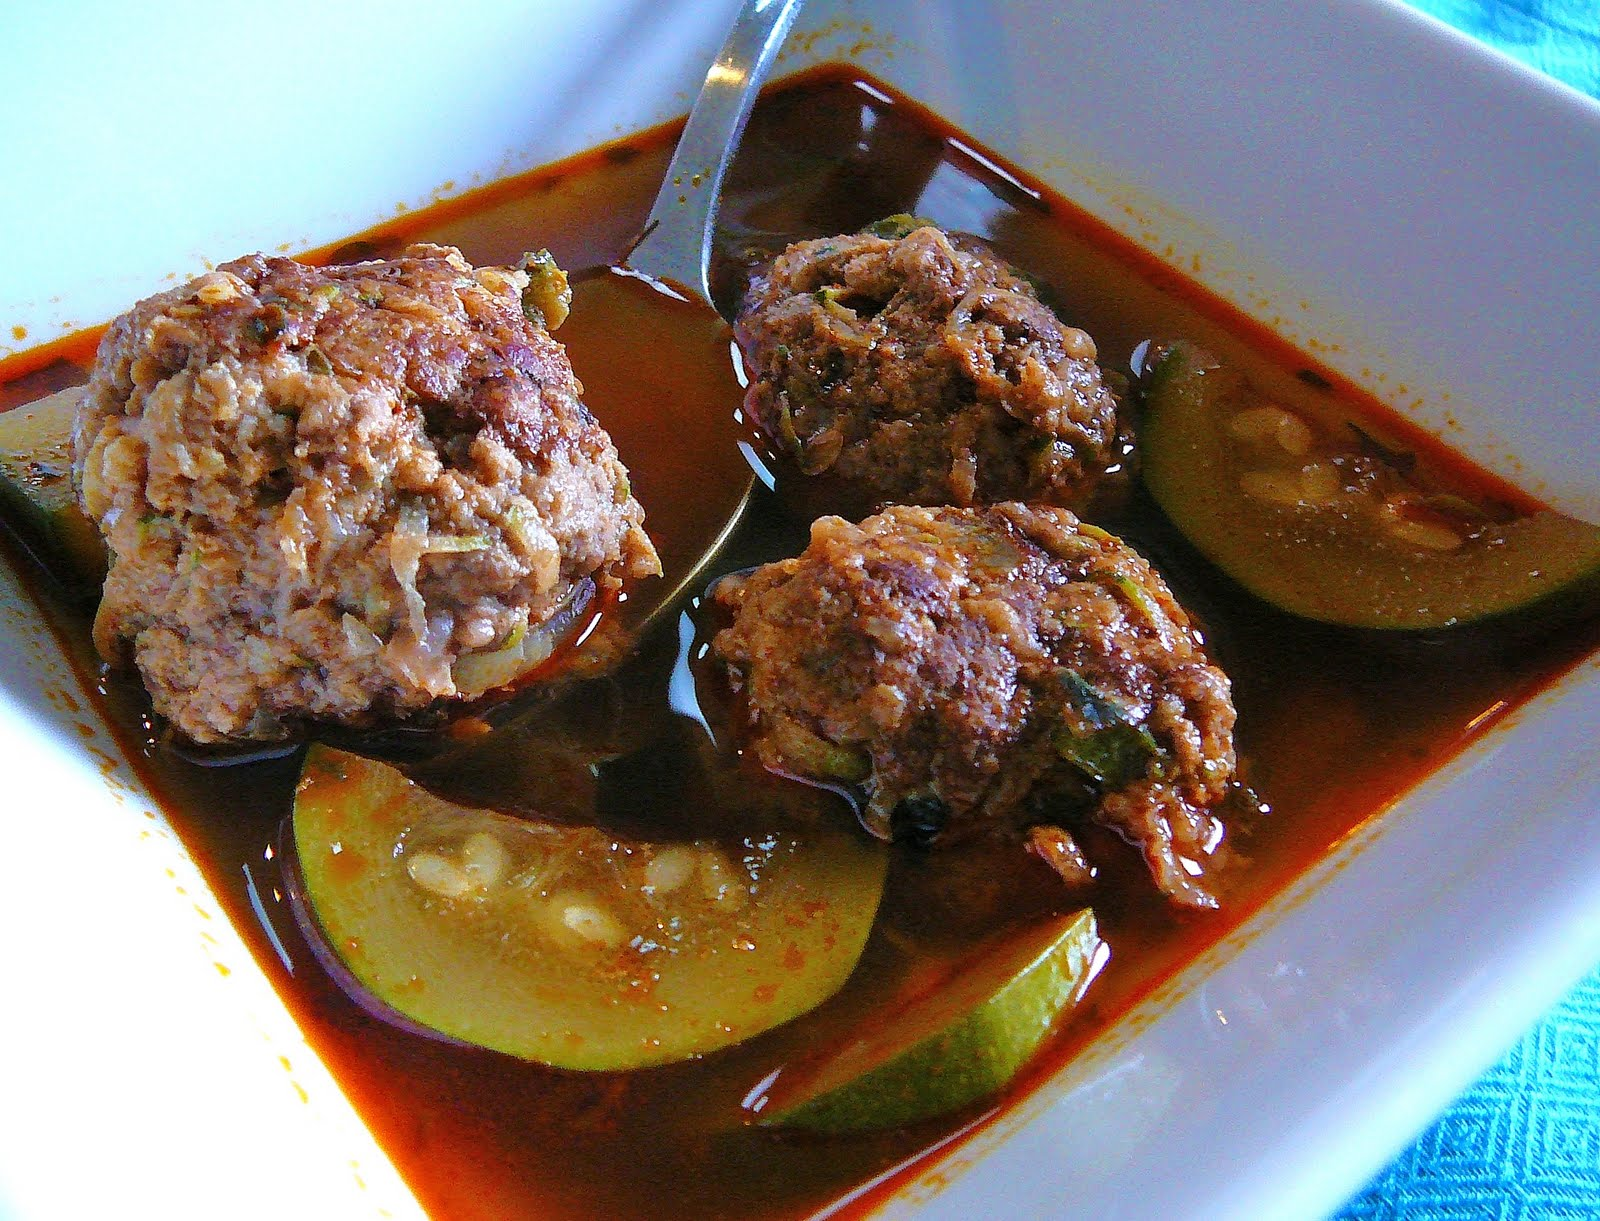 ... albondigas) soup. Three words. One simple meal. Huge impact on my